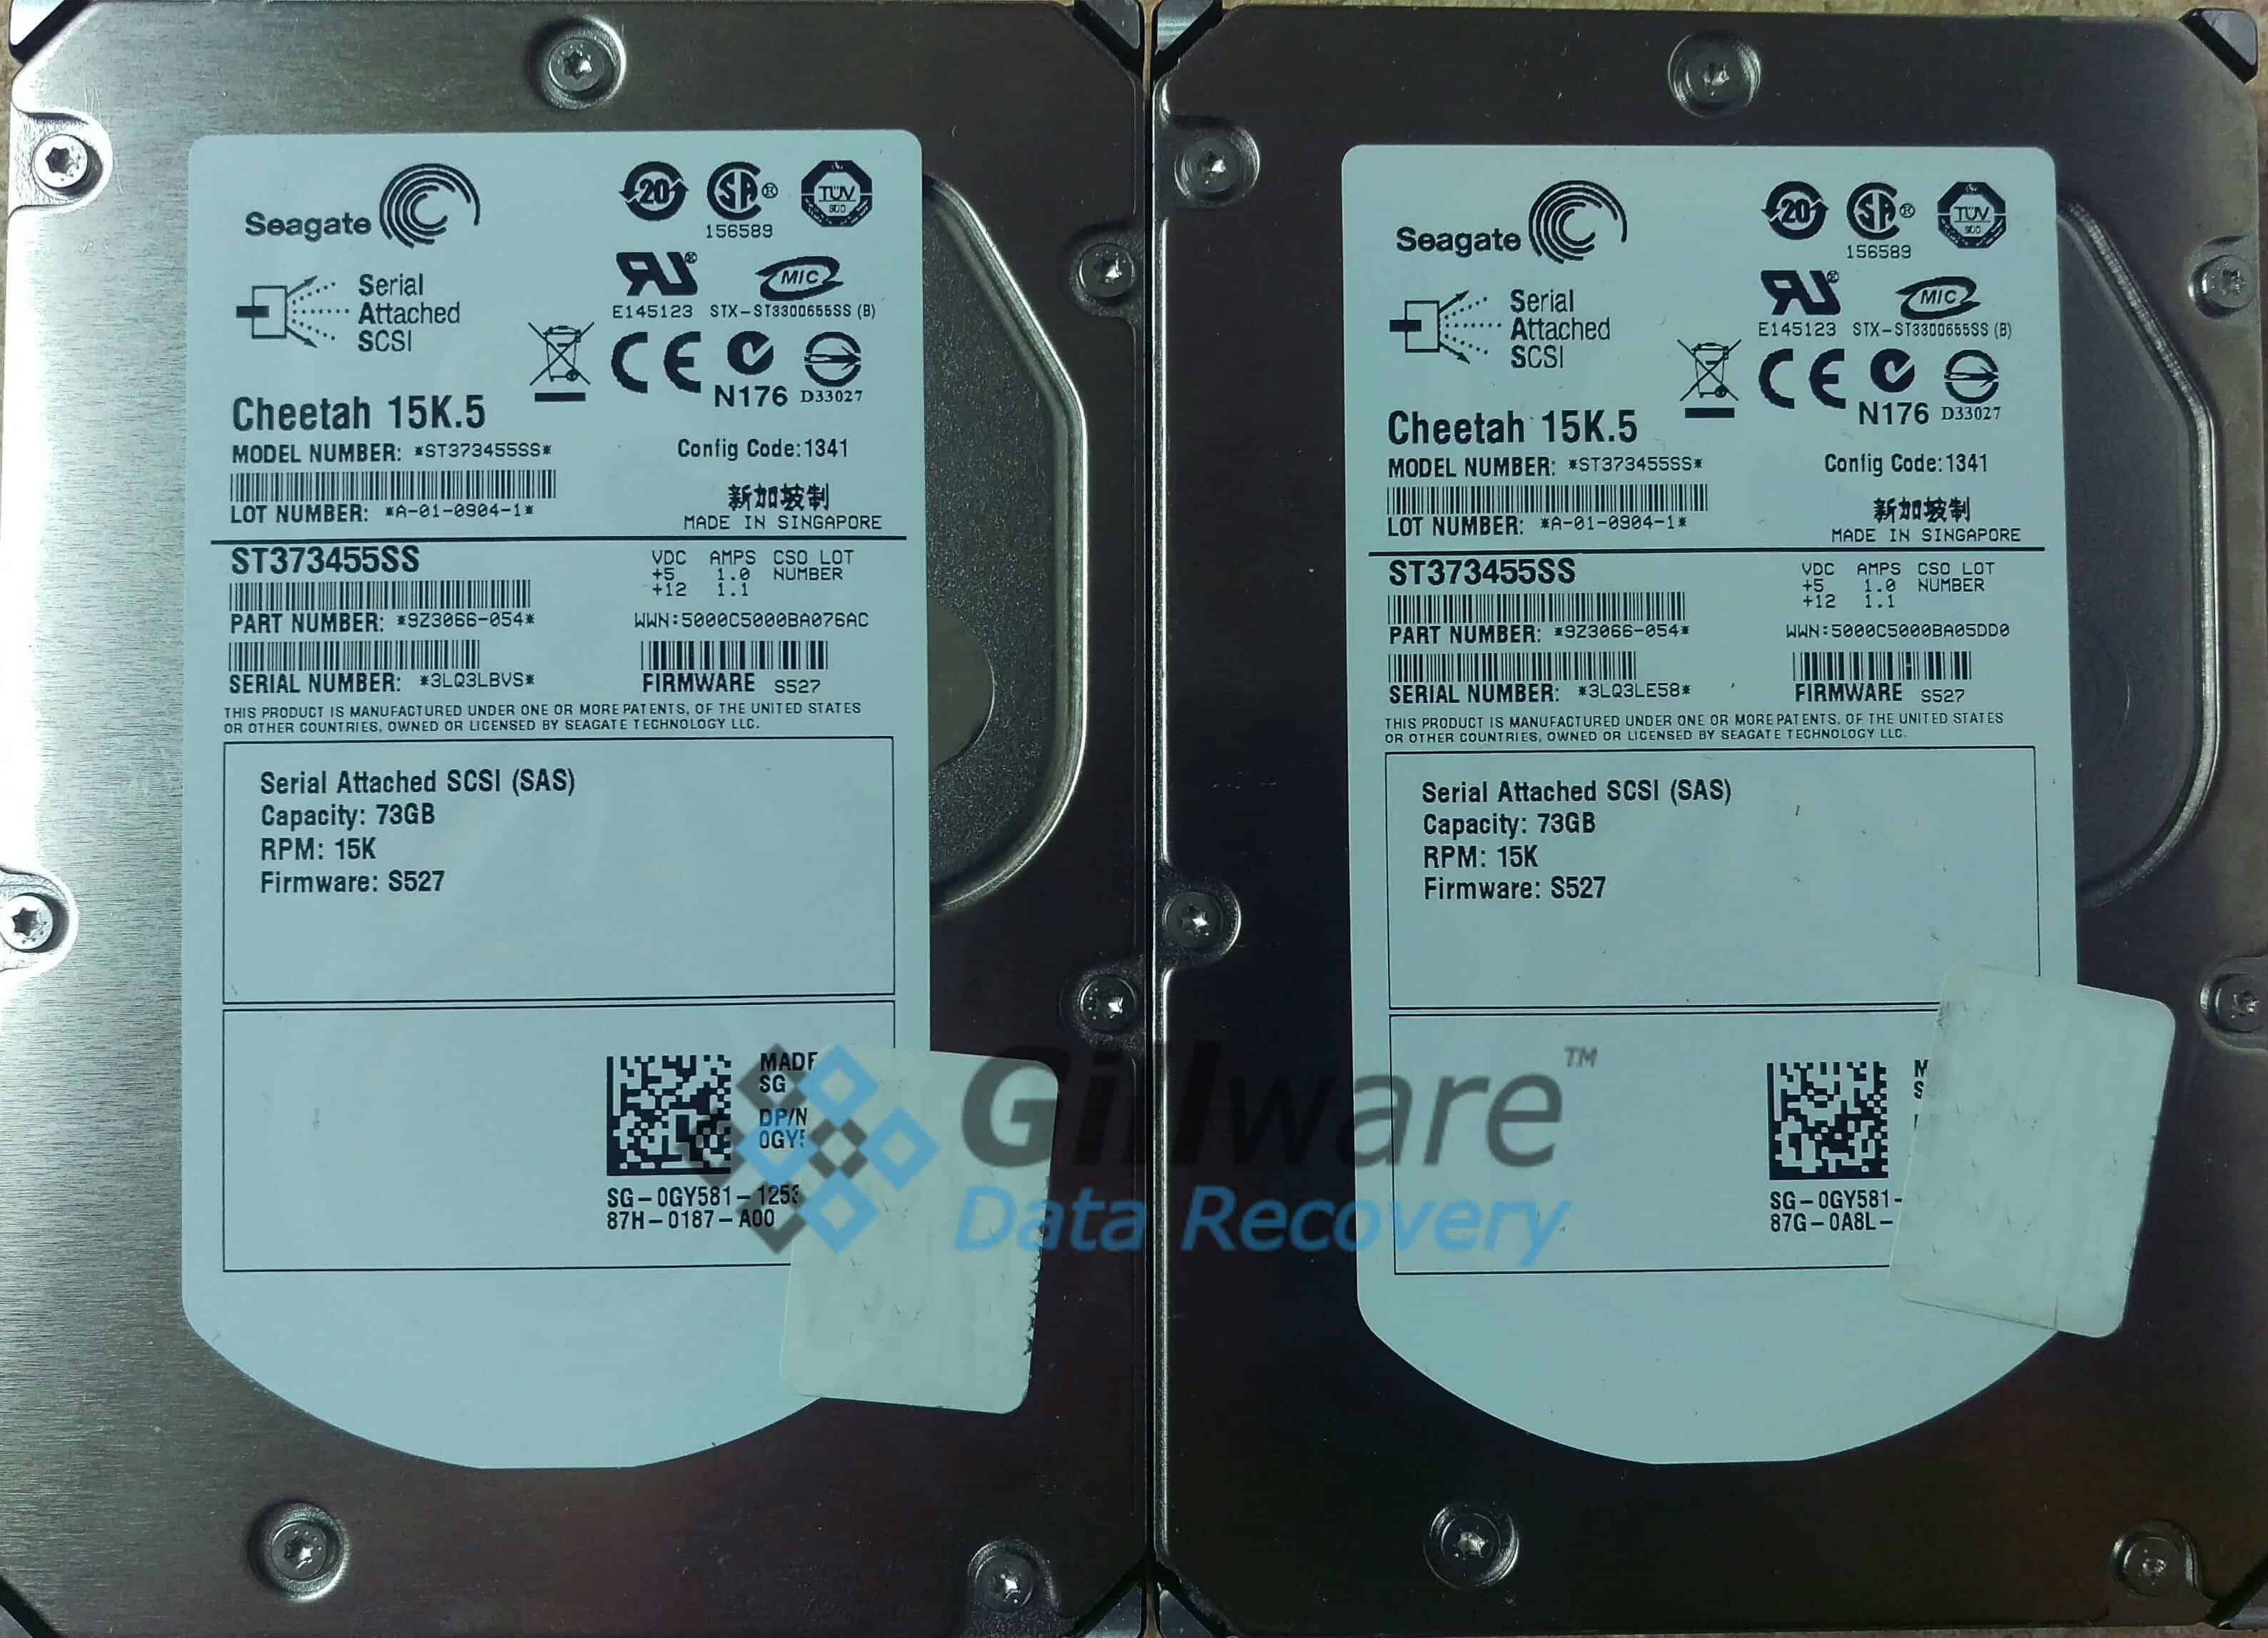 The two Seagate Cheetah 15K.5 Enterprise-class hard drives from this RAID-0 data recovery case.